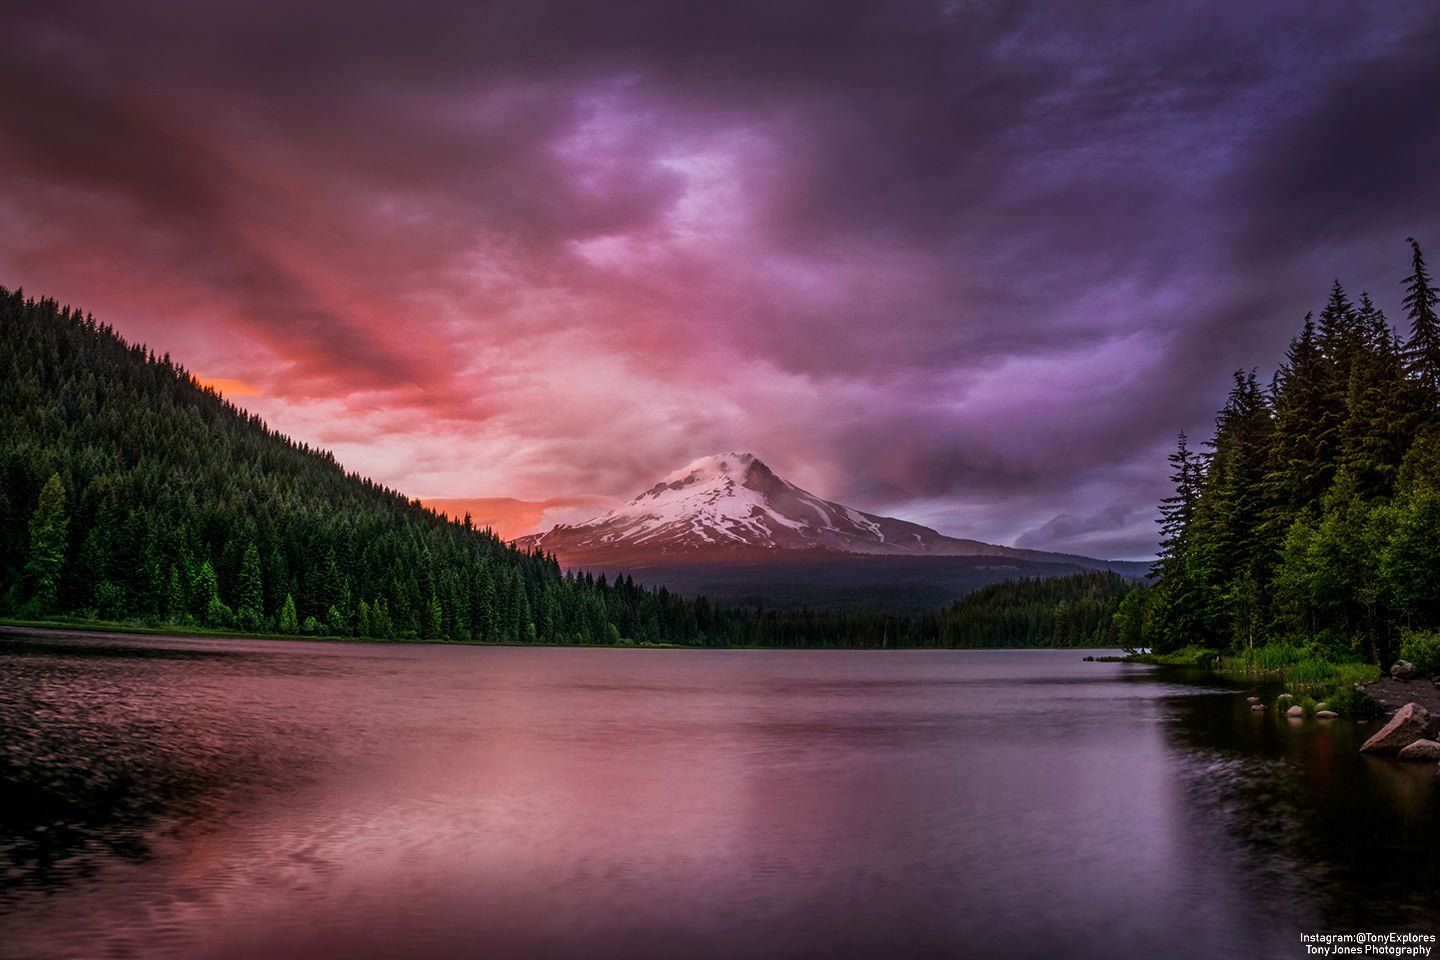 R Earthporn I Waited All Evening Through Overcast Sky And Even Drove Away Just To Turn Around After S Trillium Lake Landscape Pictures Landscape Photography